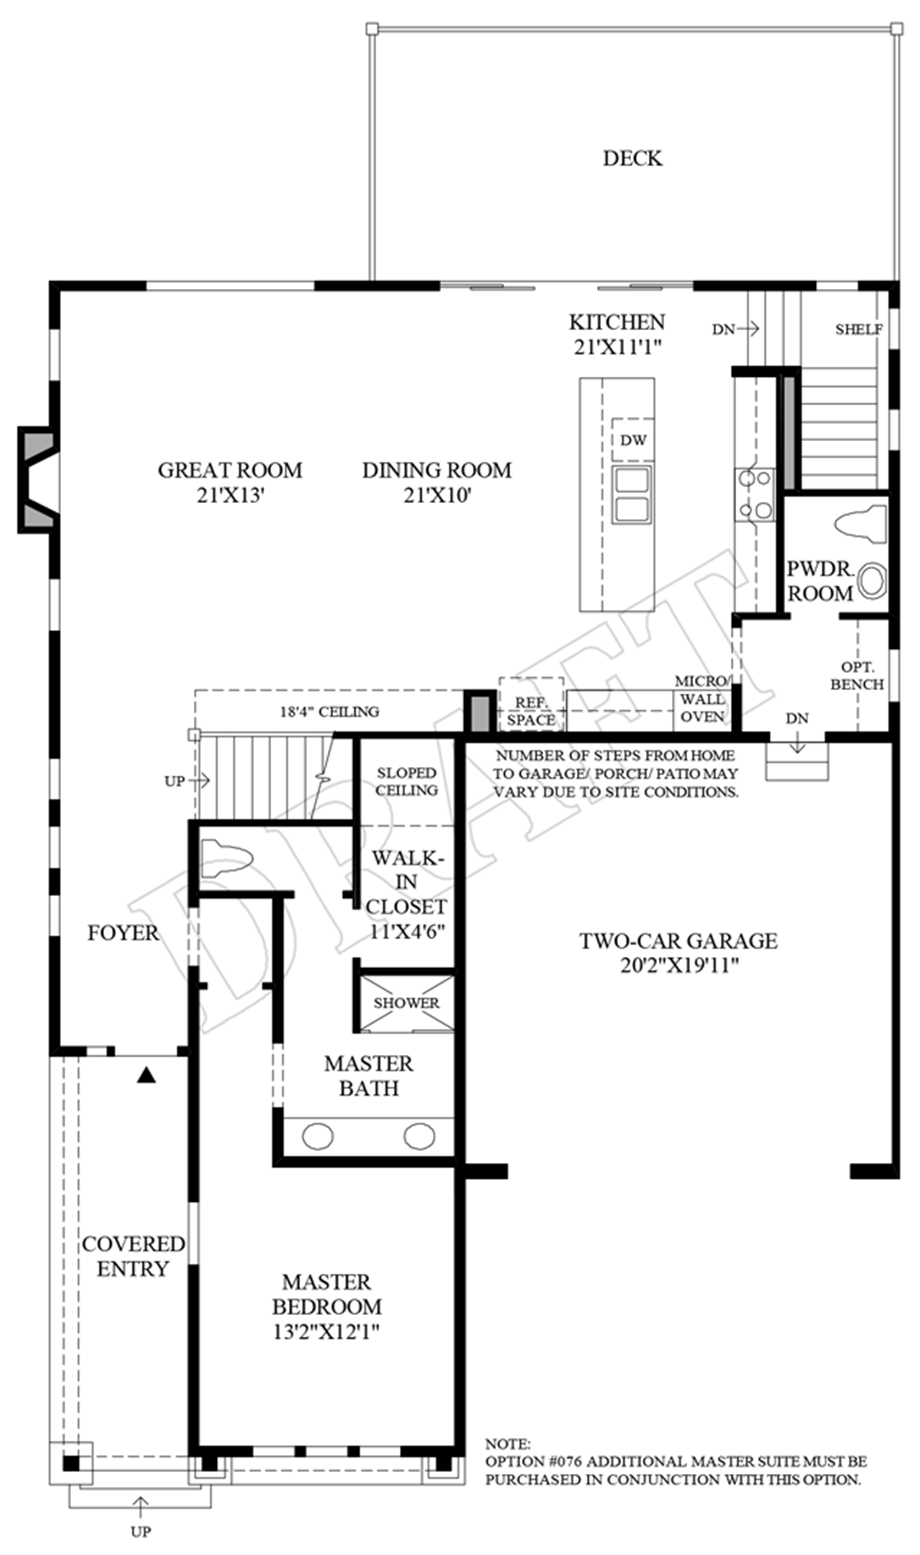 Optional Master Suite Floor Plan